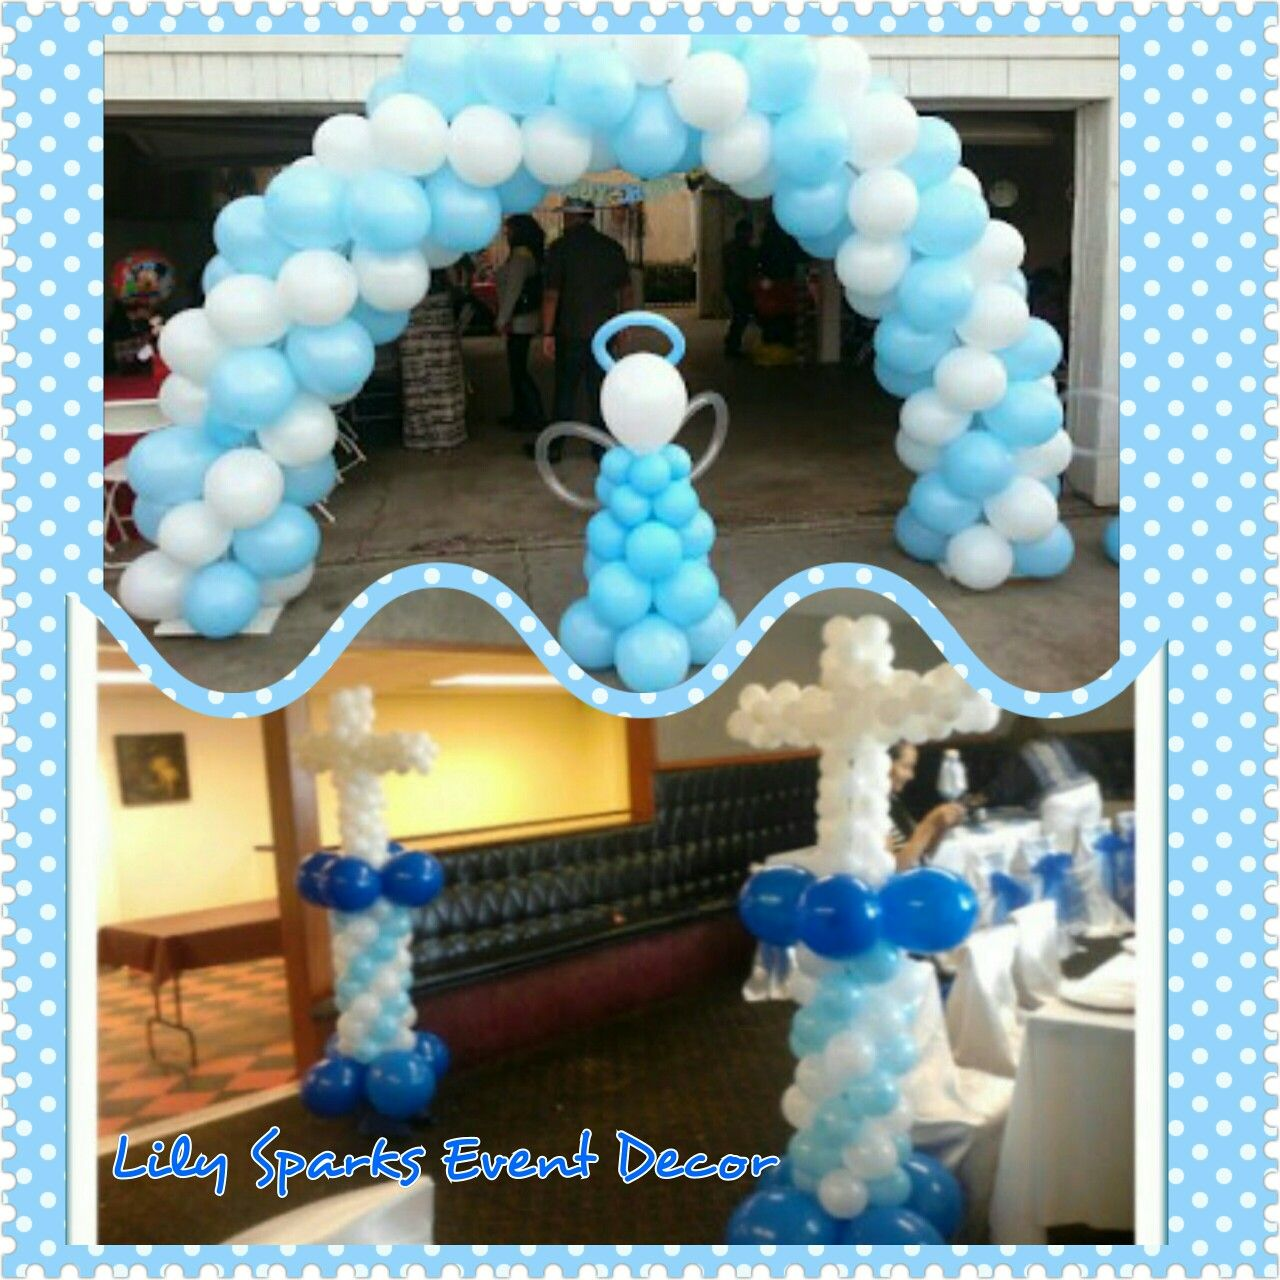 Baptism first communion balloon decor pinteres for Balloon decoration ideas for christening